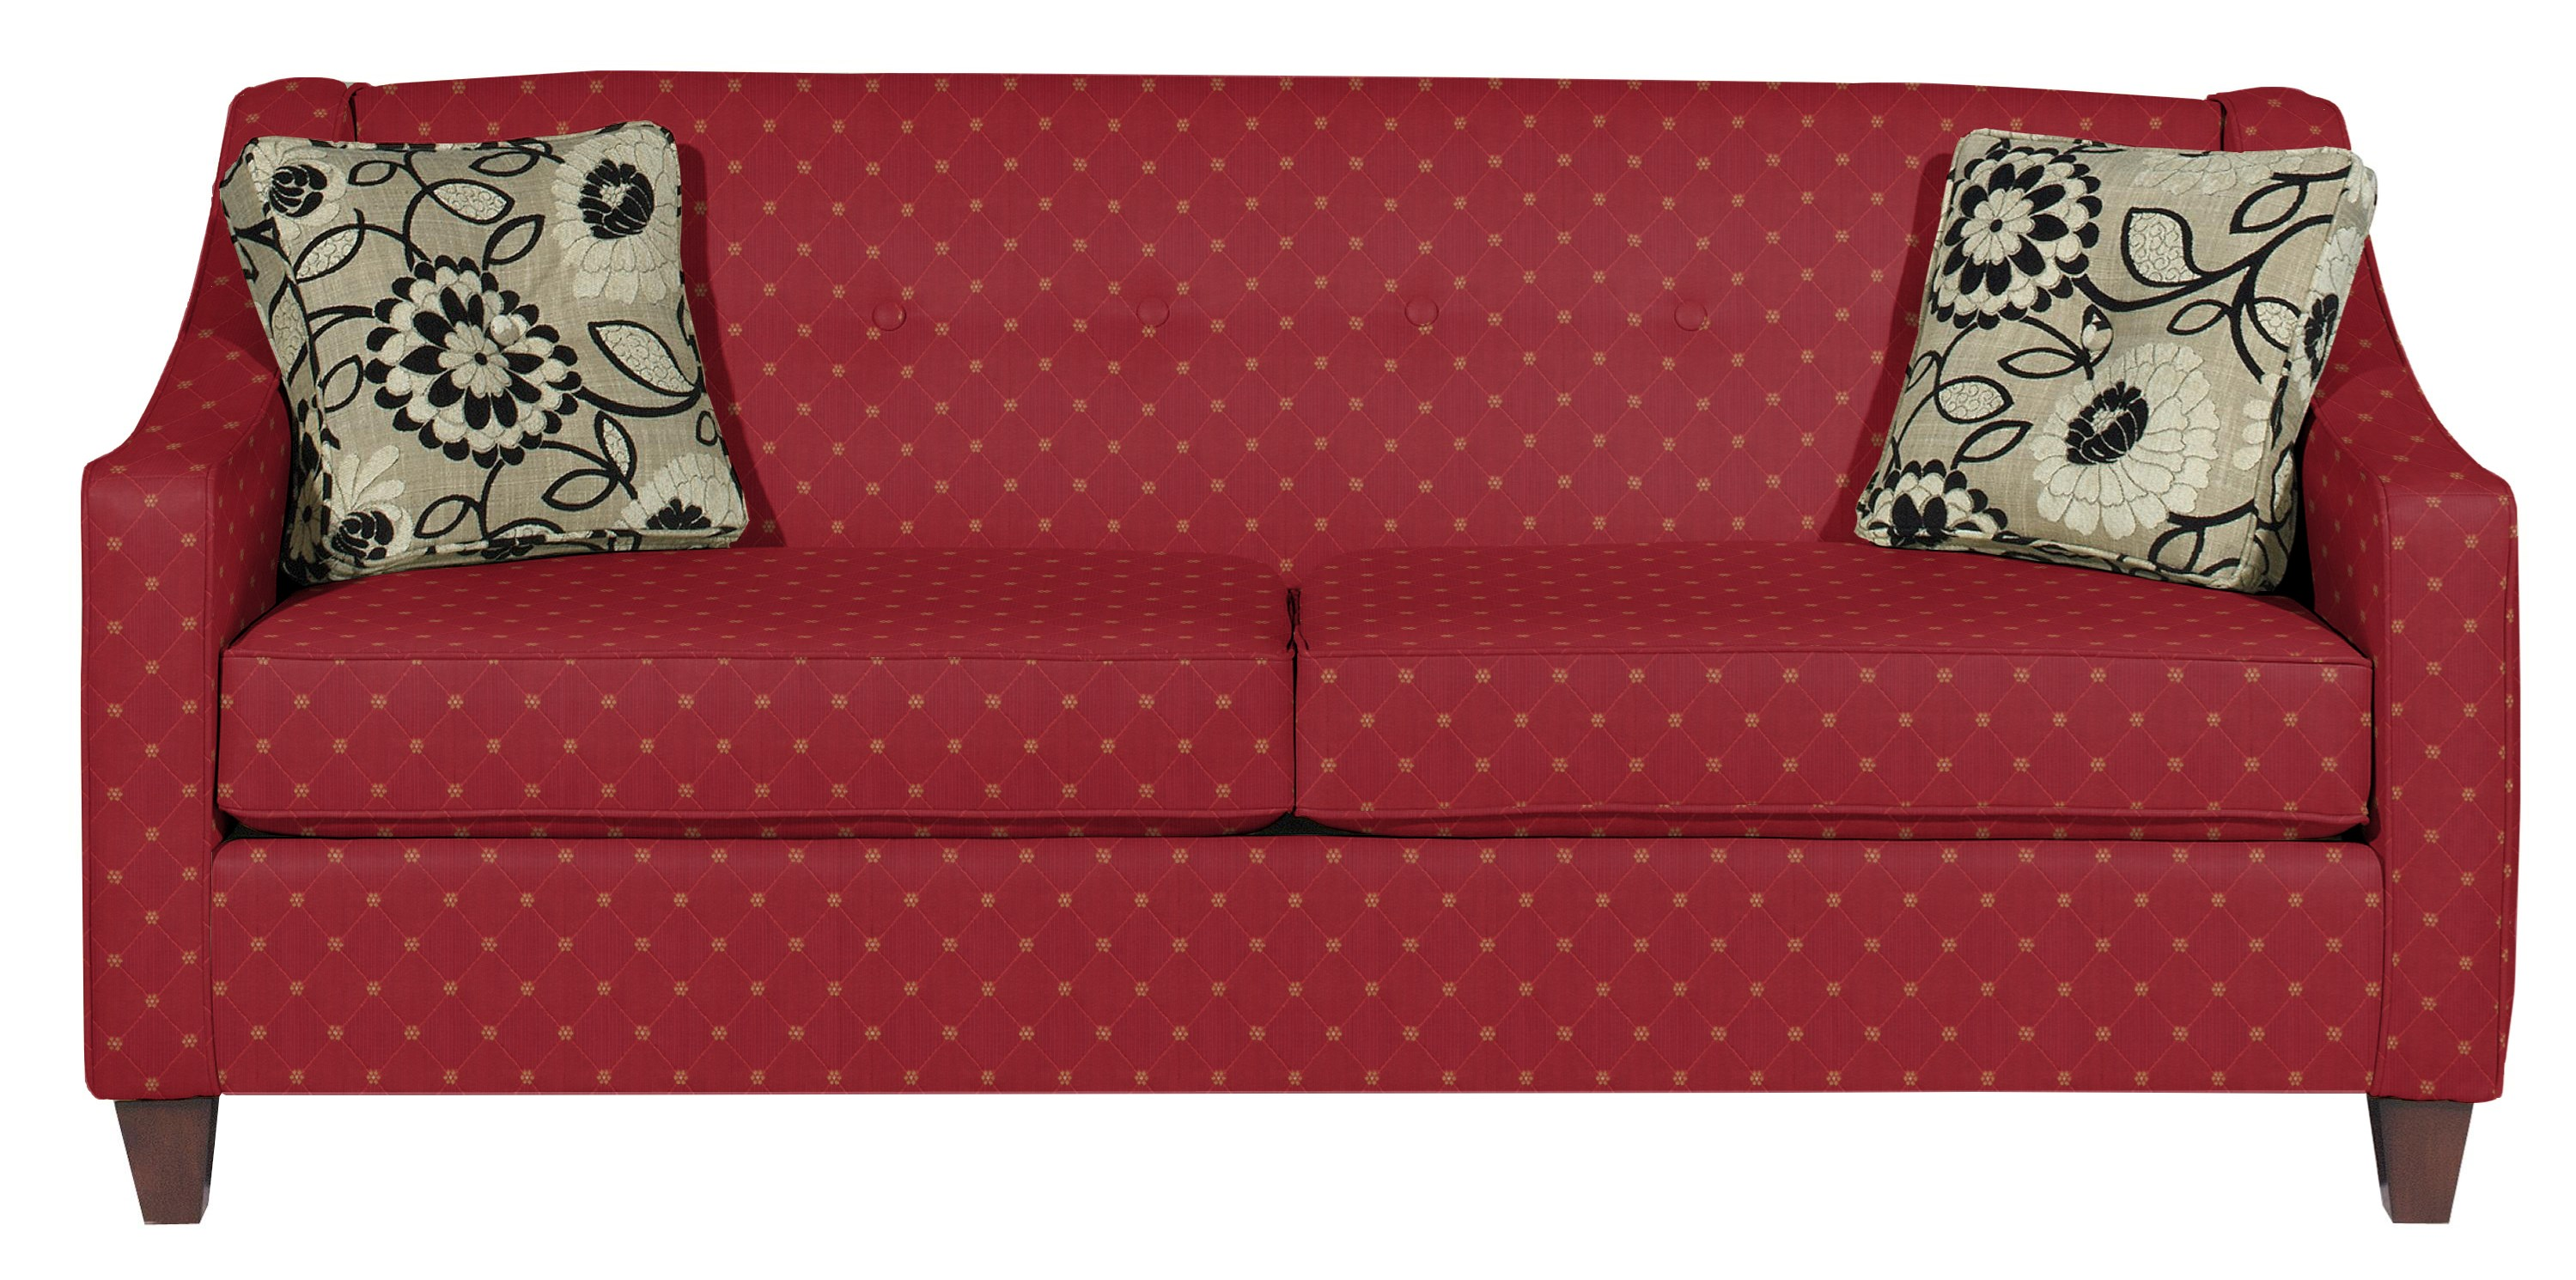 Craftmaster 7069 Sofa - Item Number: 706950-LISTER-26